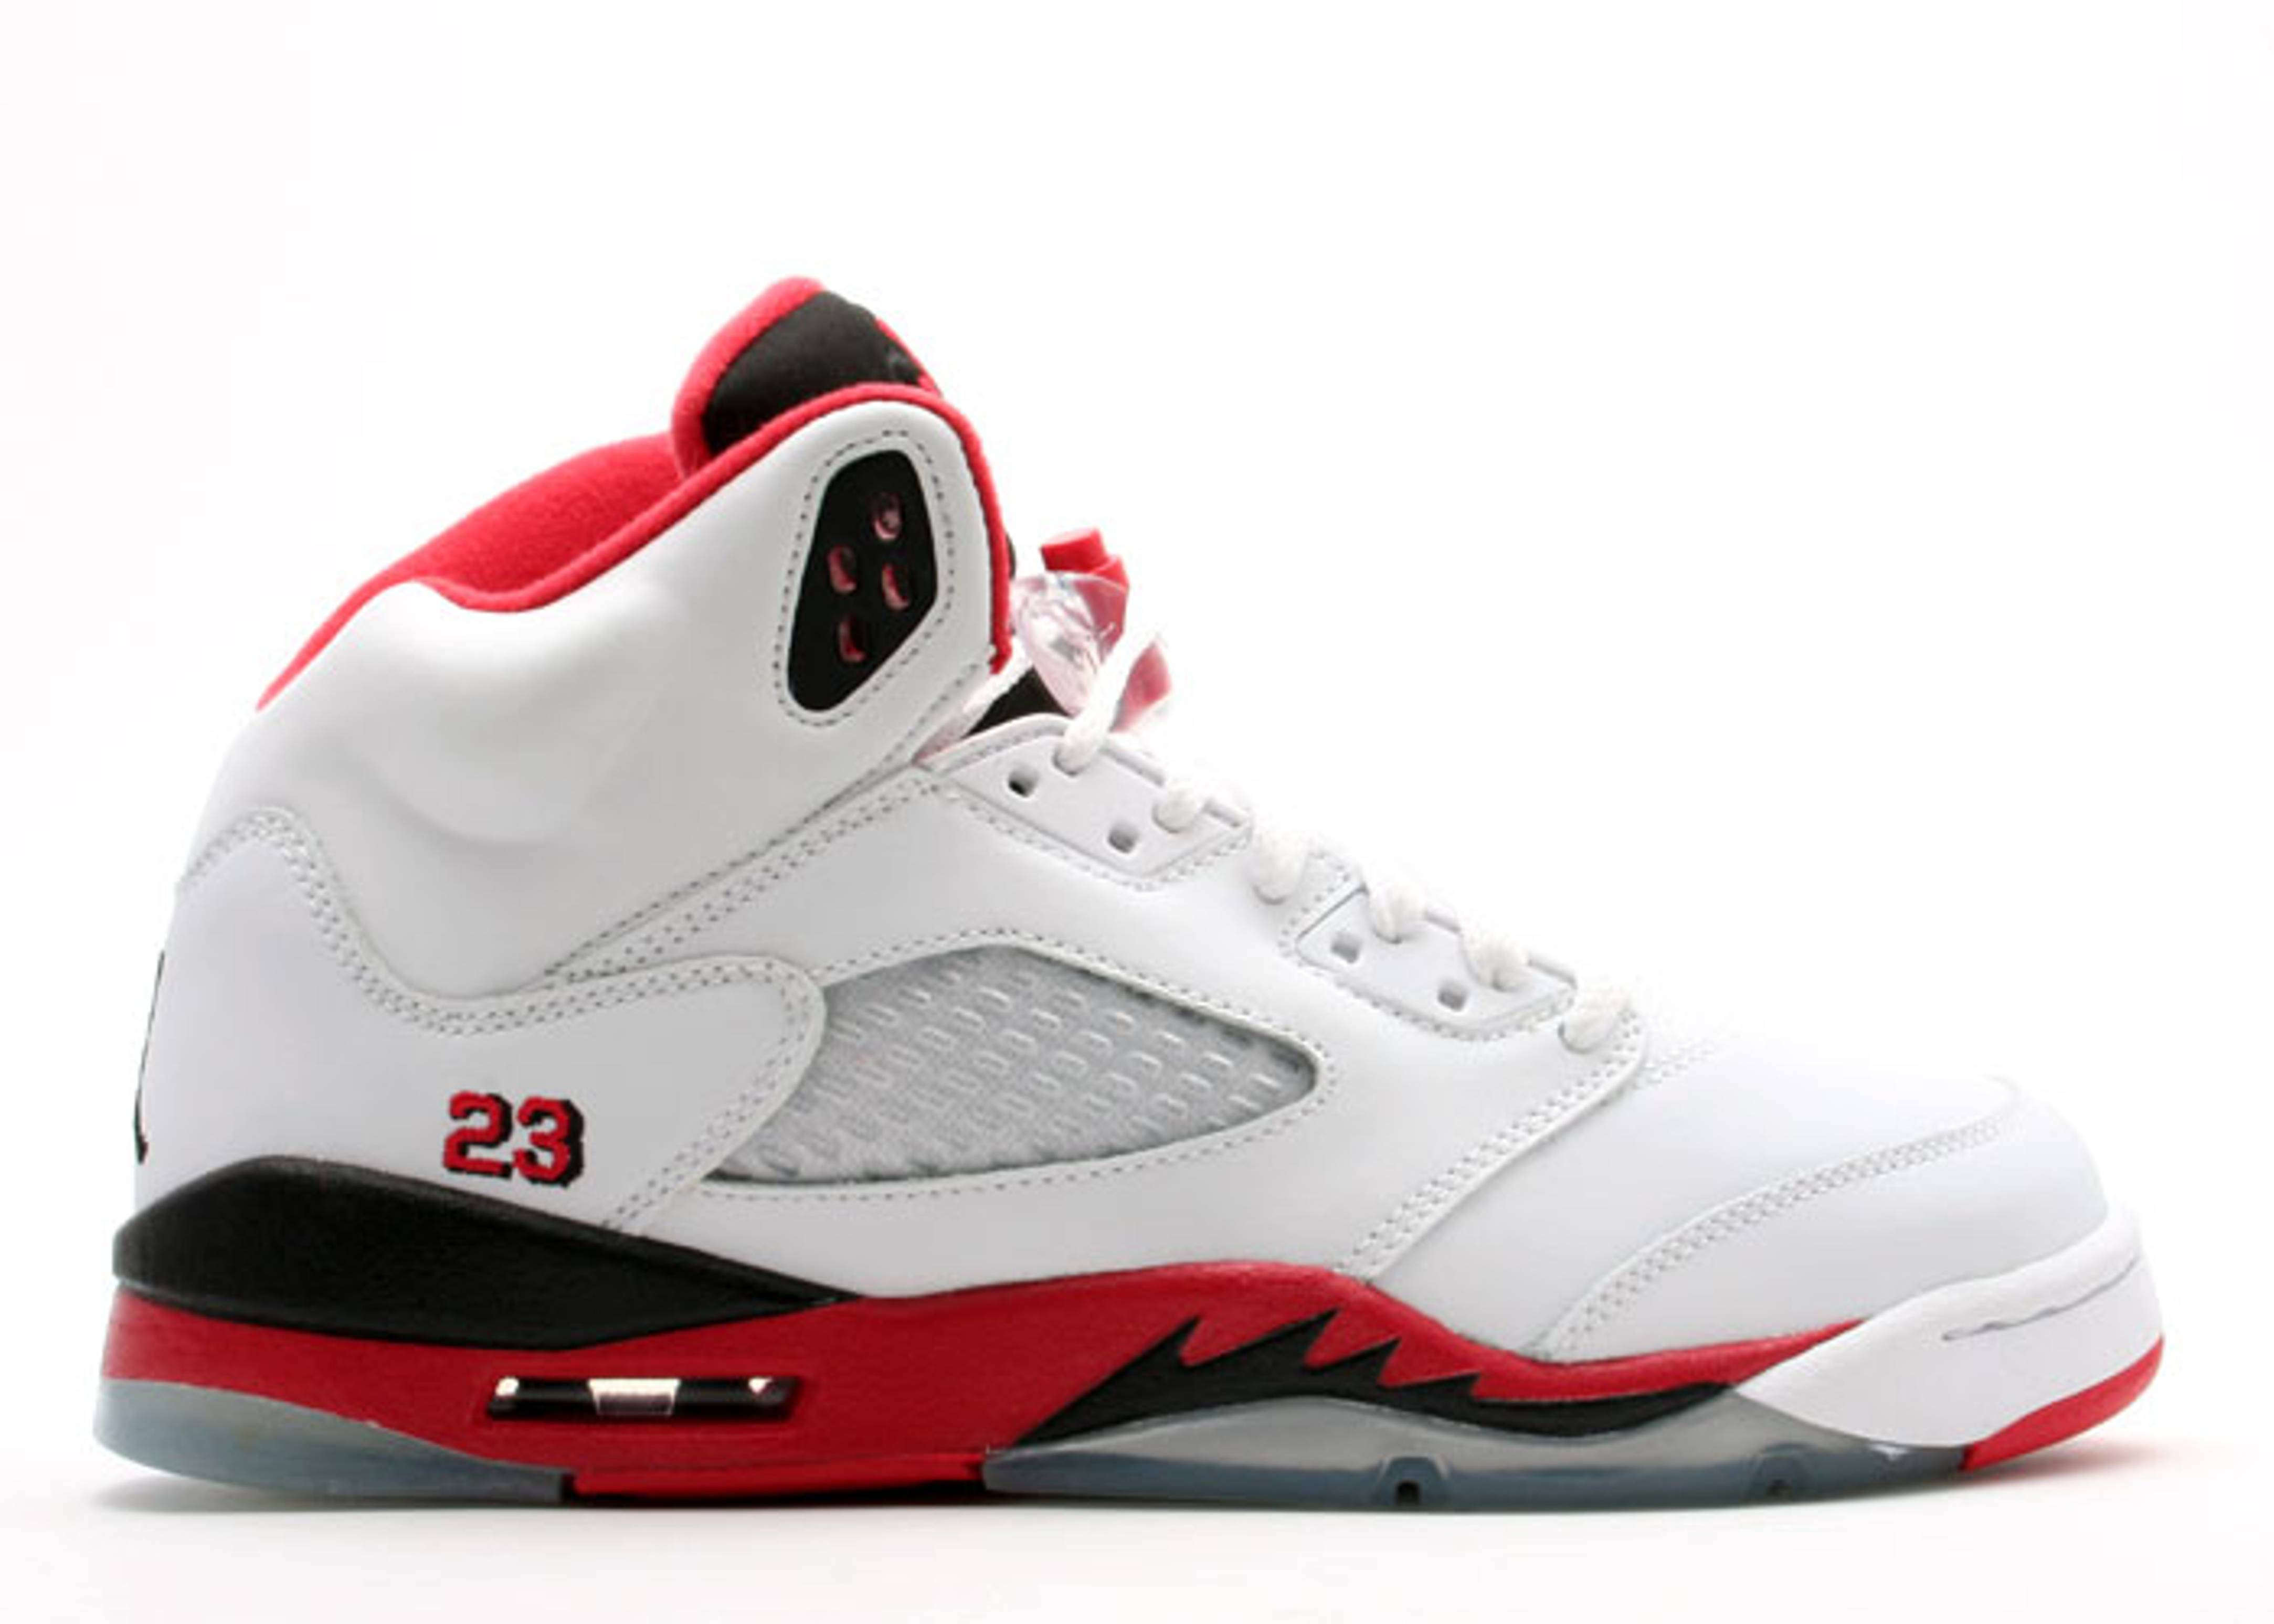 air jordan 5 retro gs white fire red black. Black Bedroom Furniture Sets. Home Design Ideas